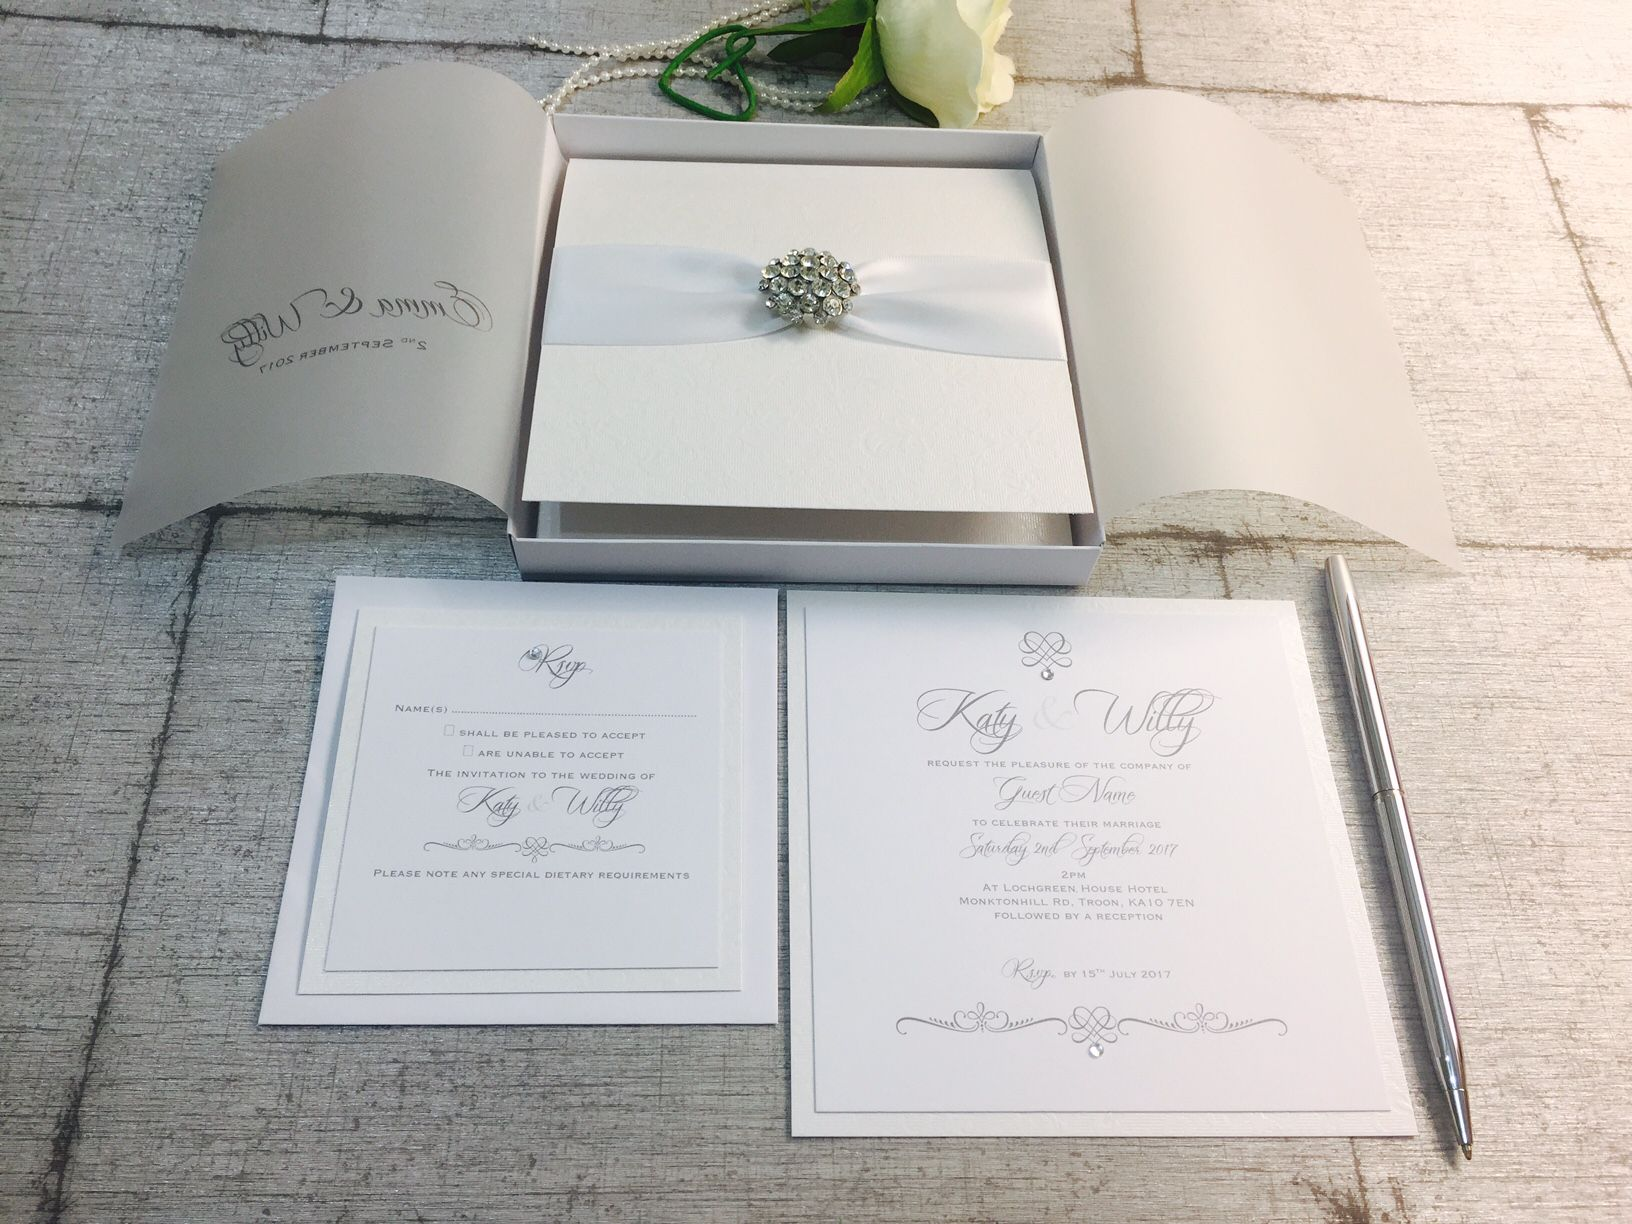 White wedding invitation with crystal and presentation box